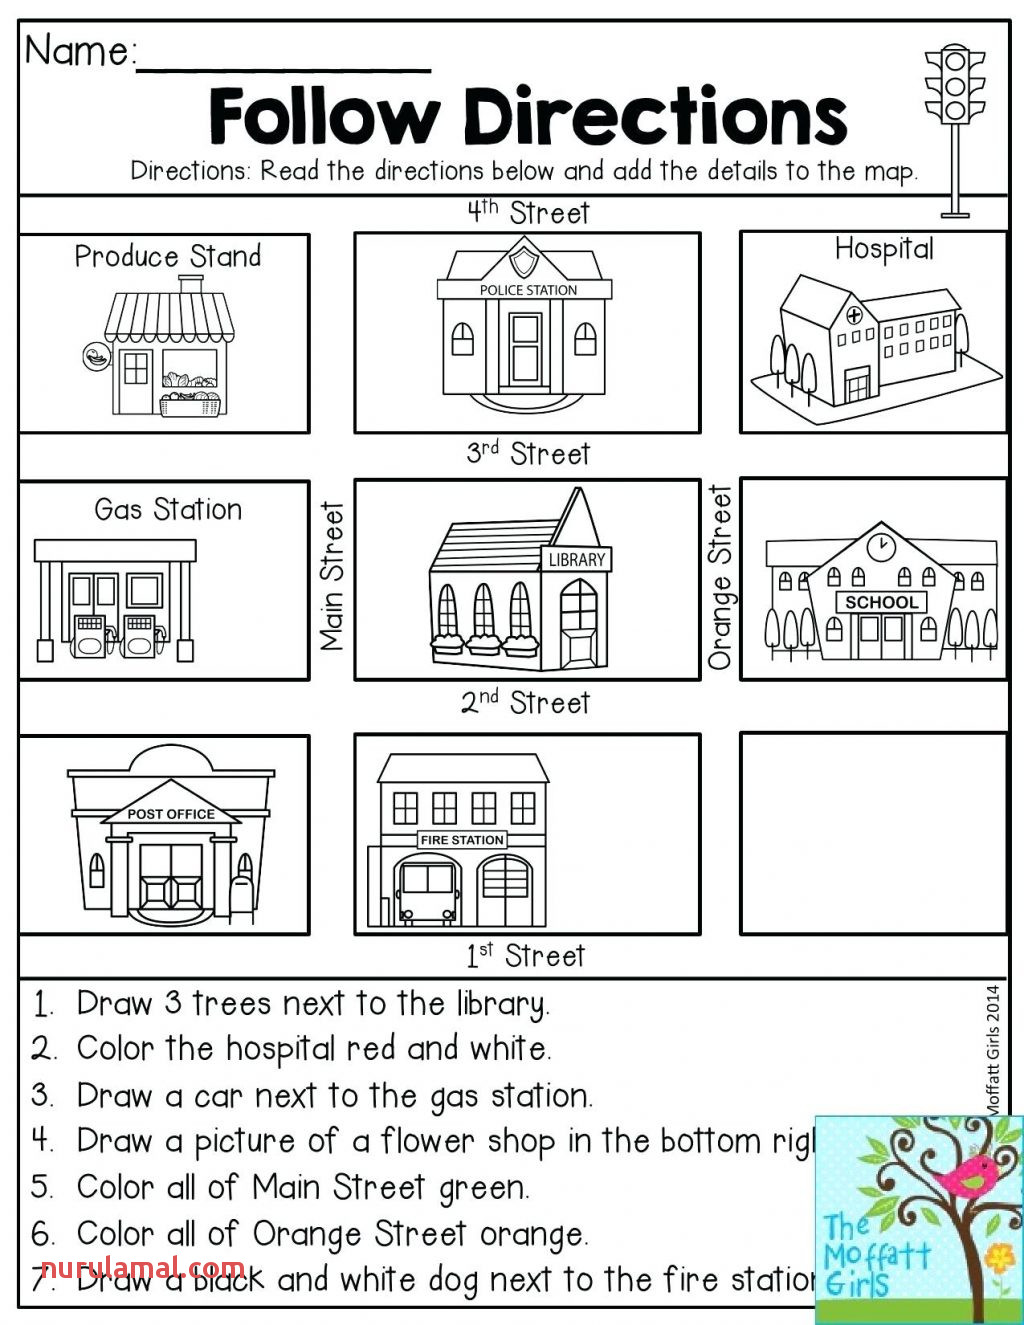 Elementary Phy Worksheets E2 80 93 tophatsheet Co Kids Free